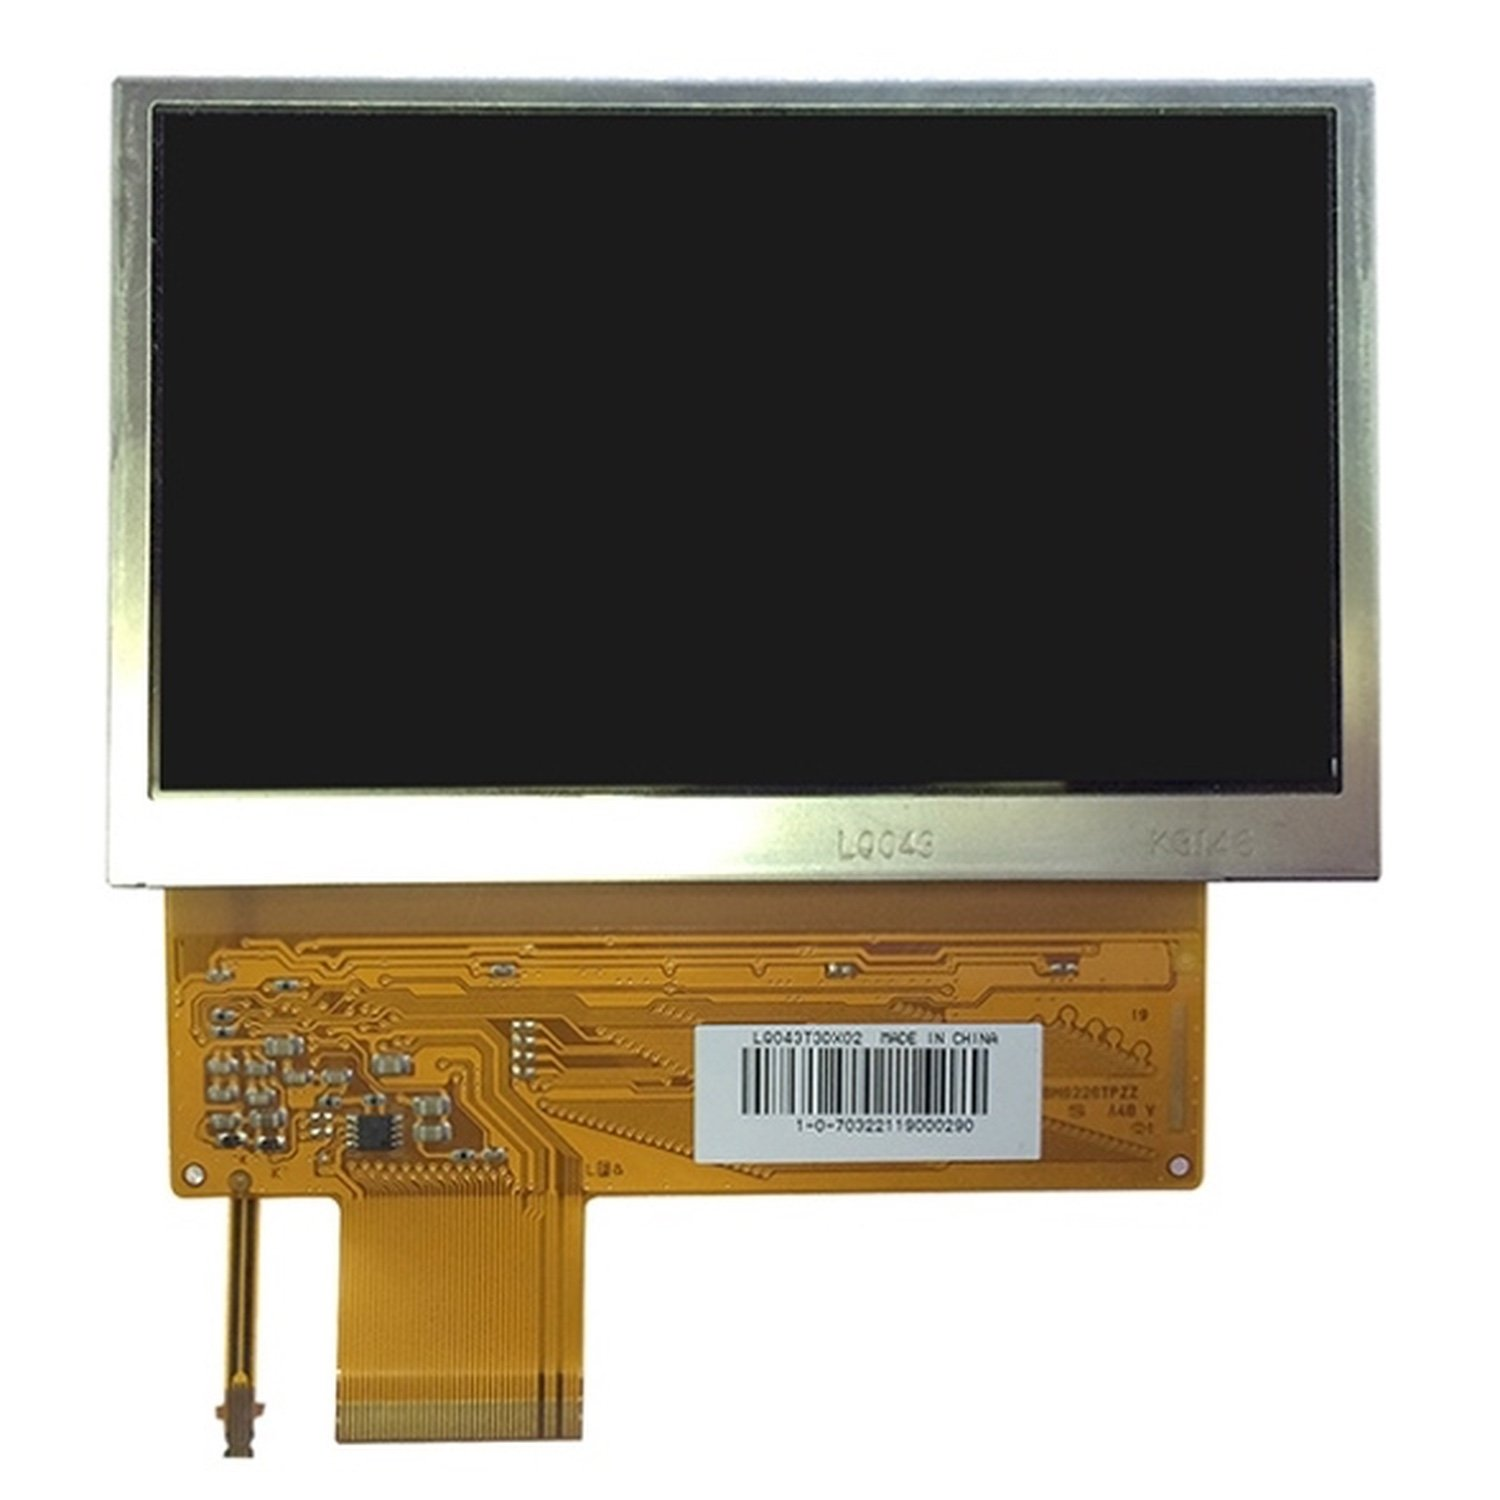 Sony PSP Replacement TFT LCD with backlight new